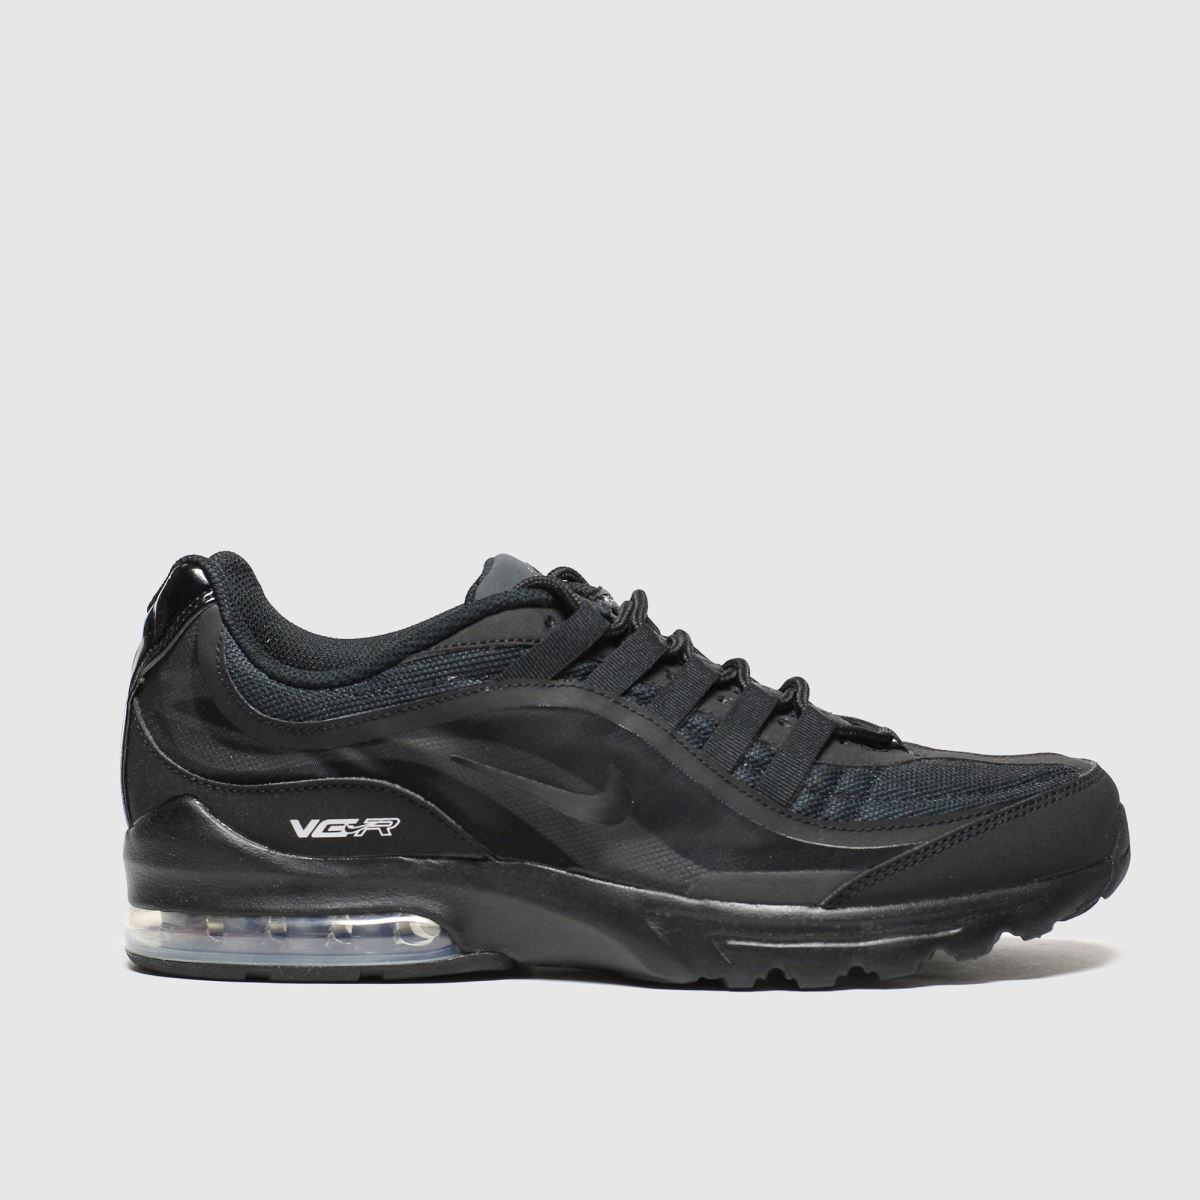 Nike Black & Grey Air Max Vg-r Trainers